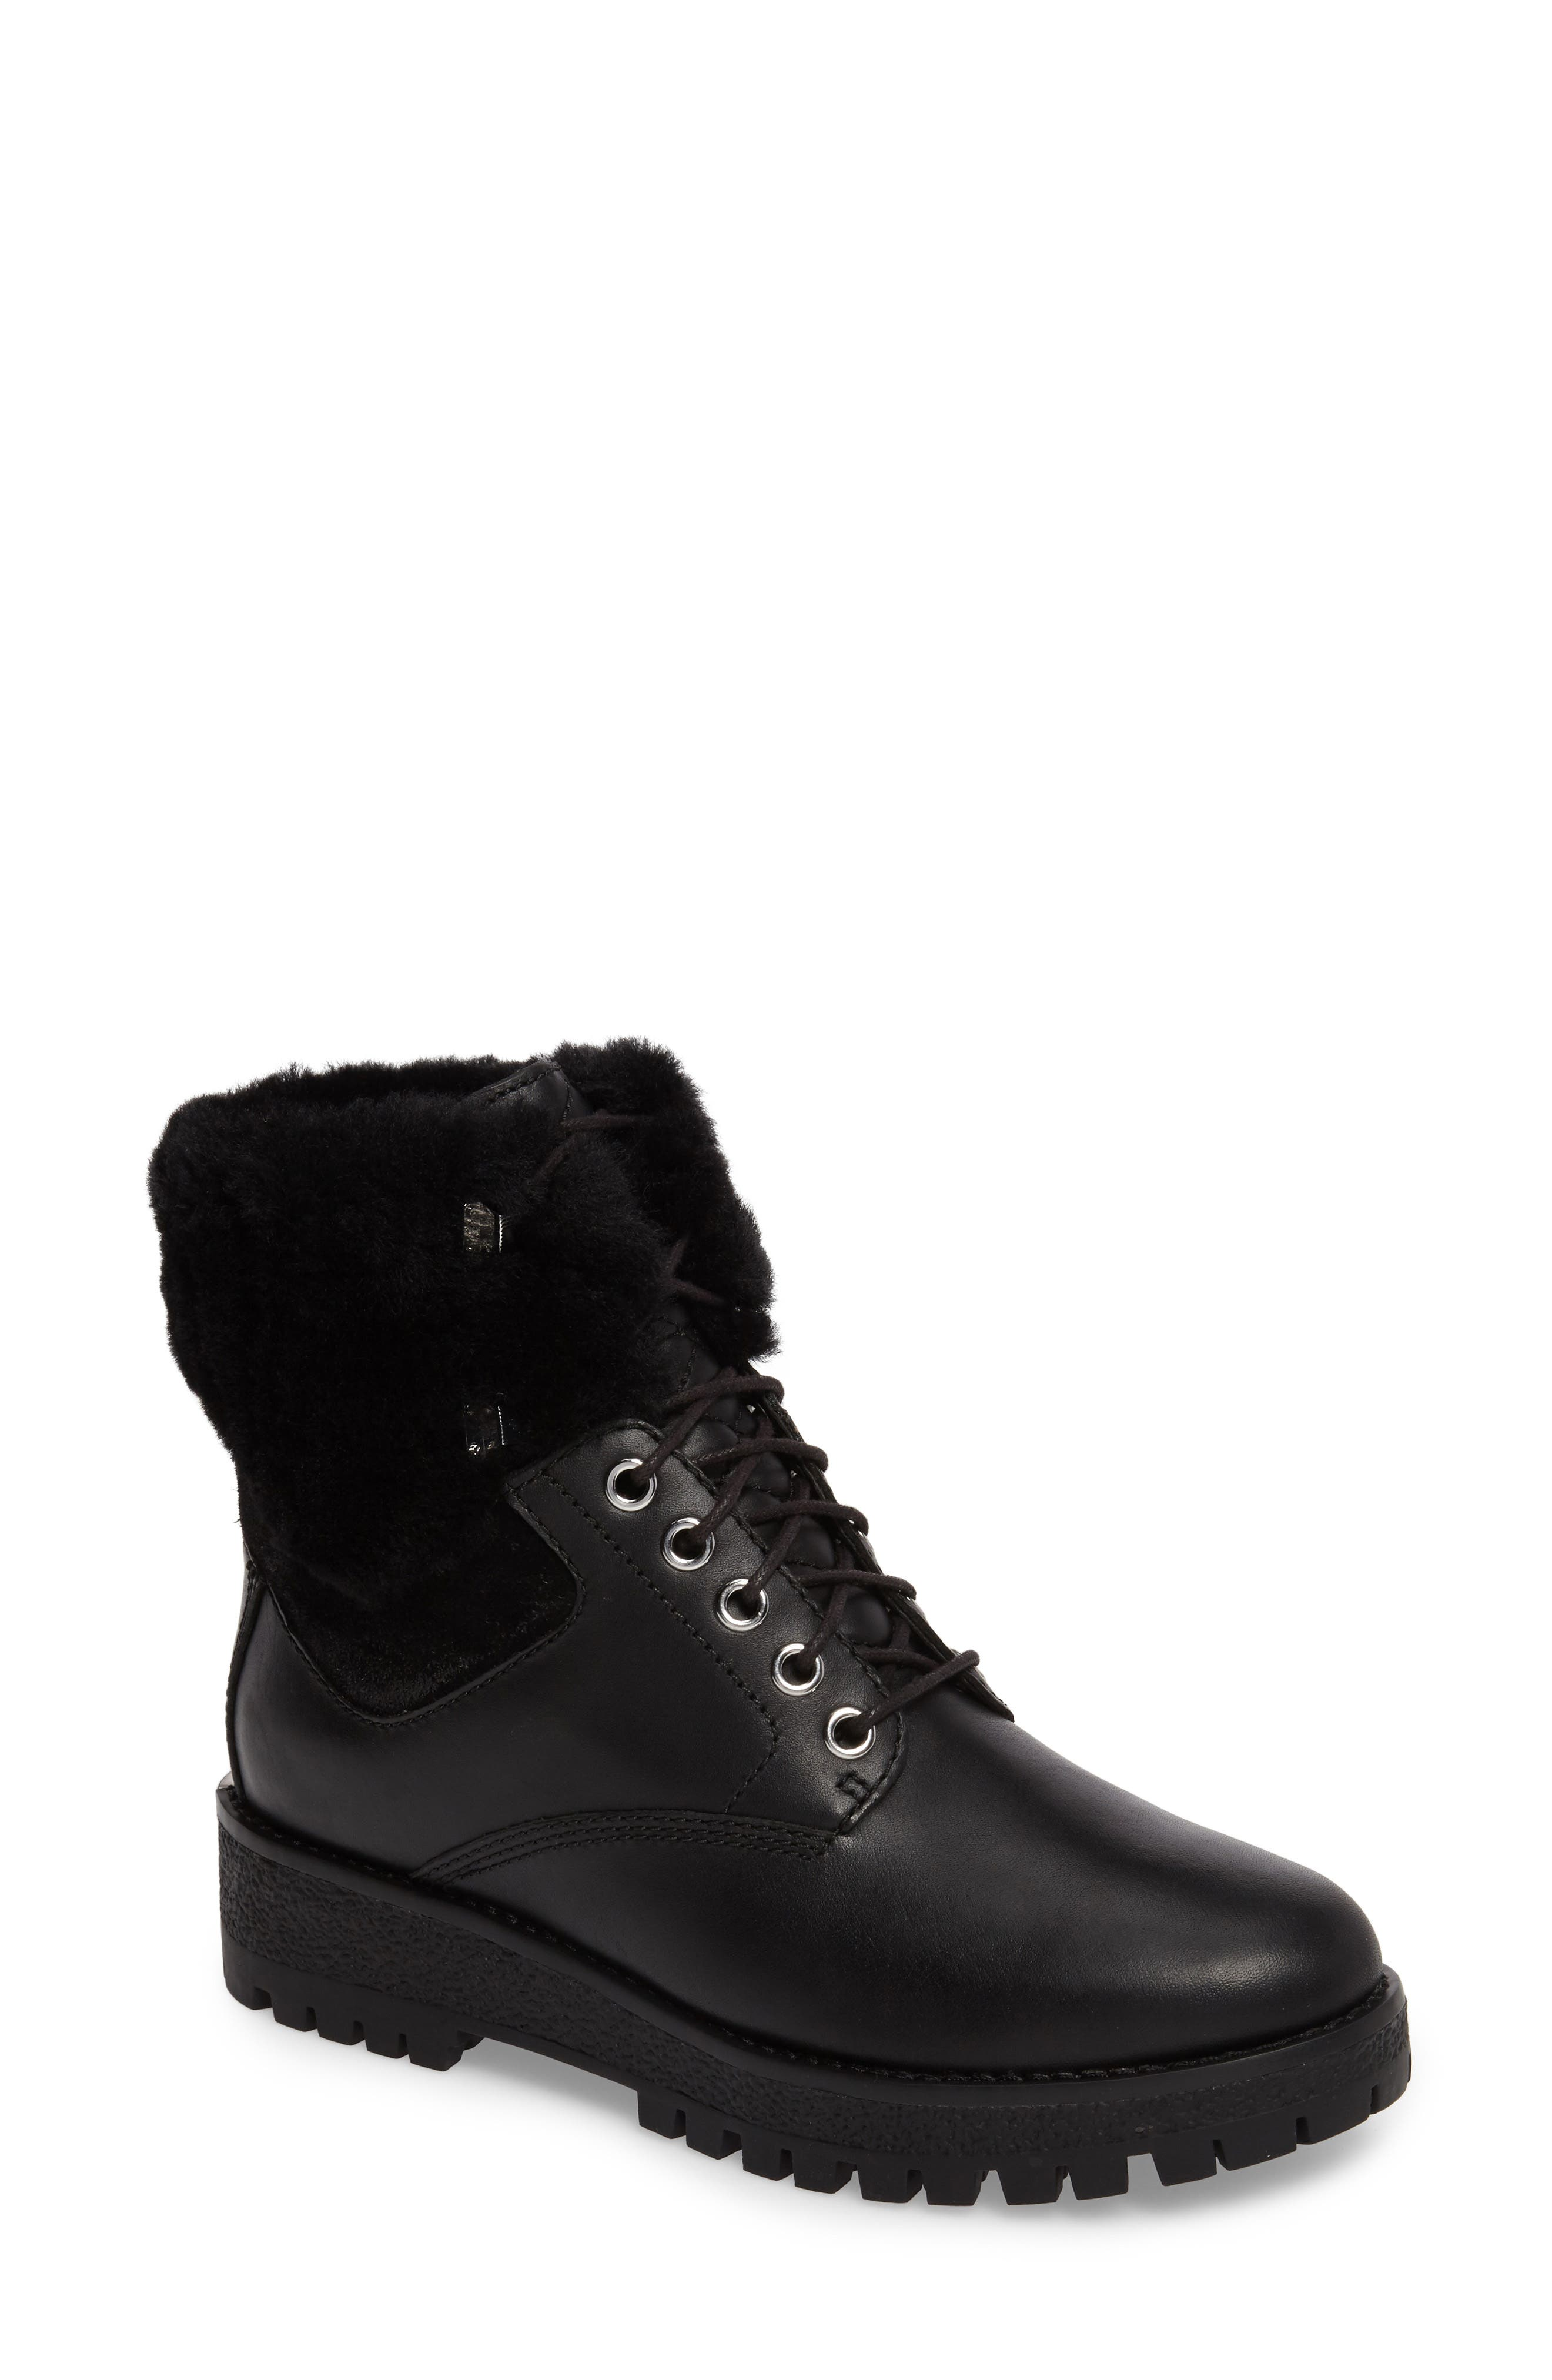 Alternate Image 1 Selected - MICHAEL Michael Kors Teddy Water Resistant Boot with Genuine Shearling Trim (Women)